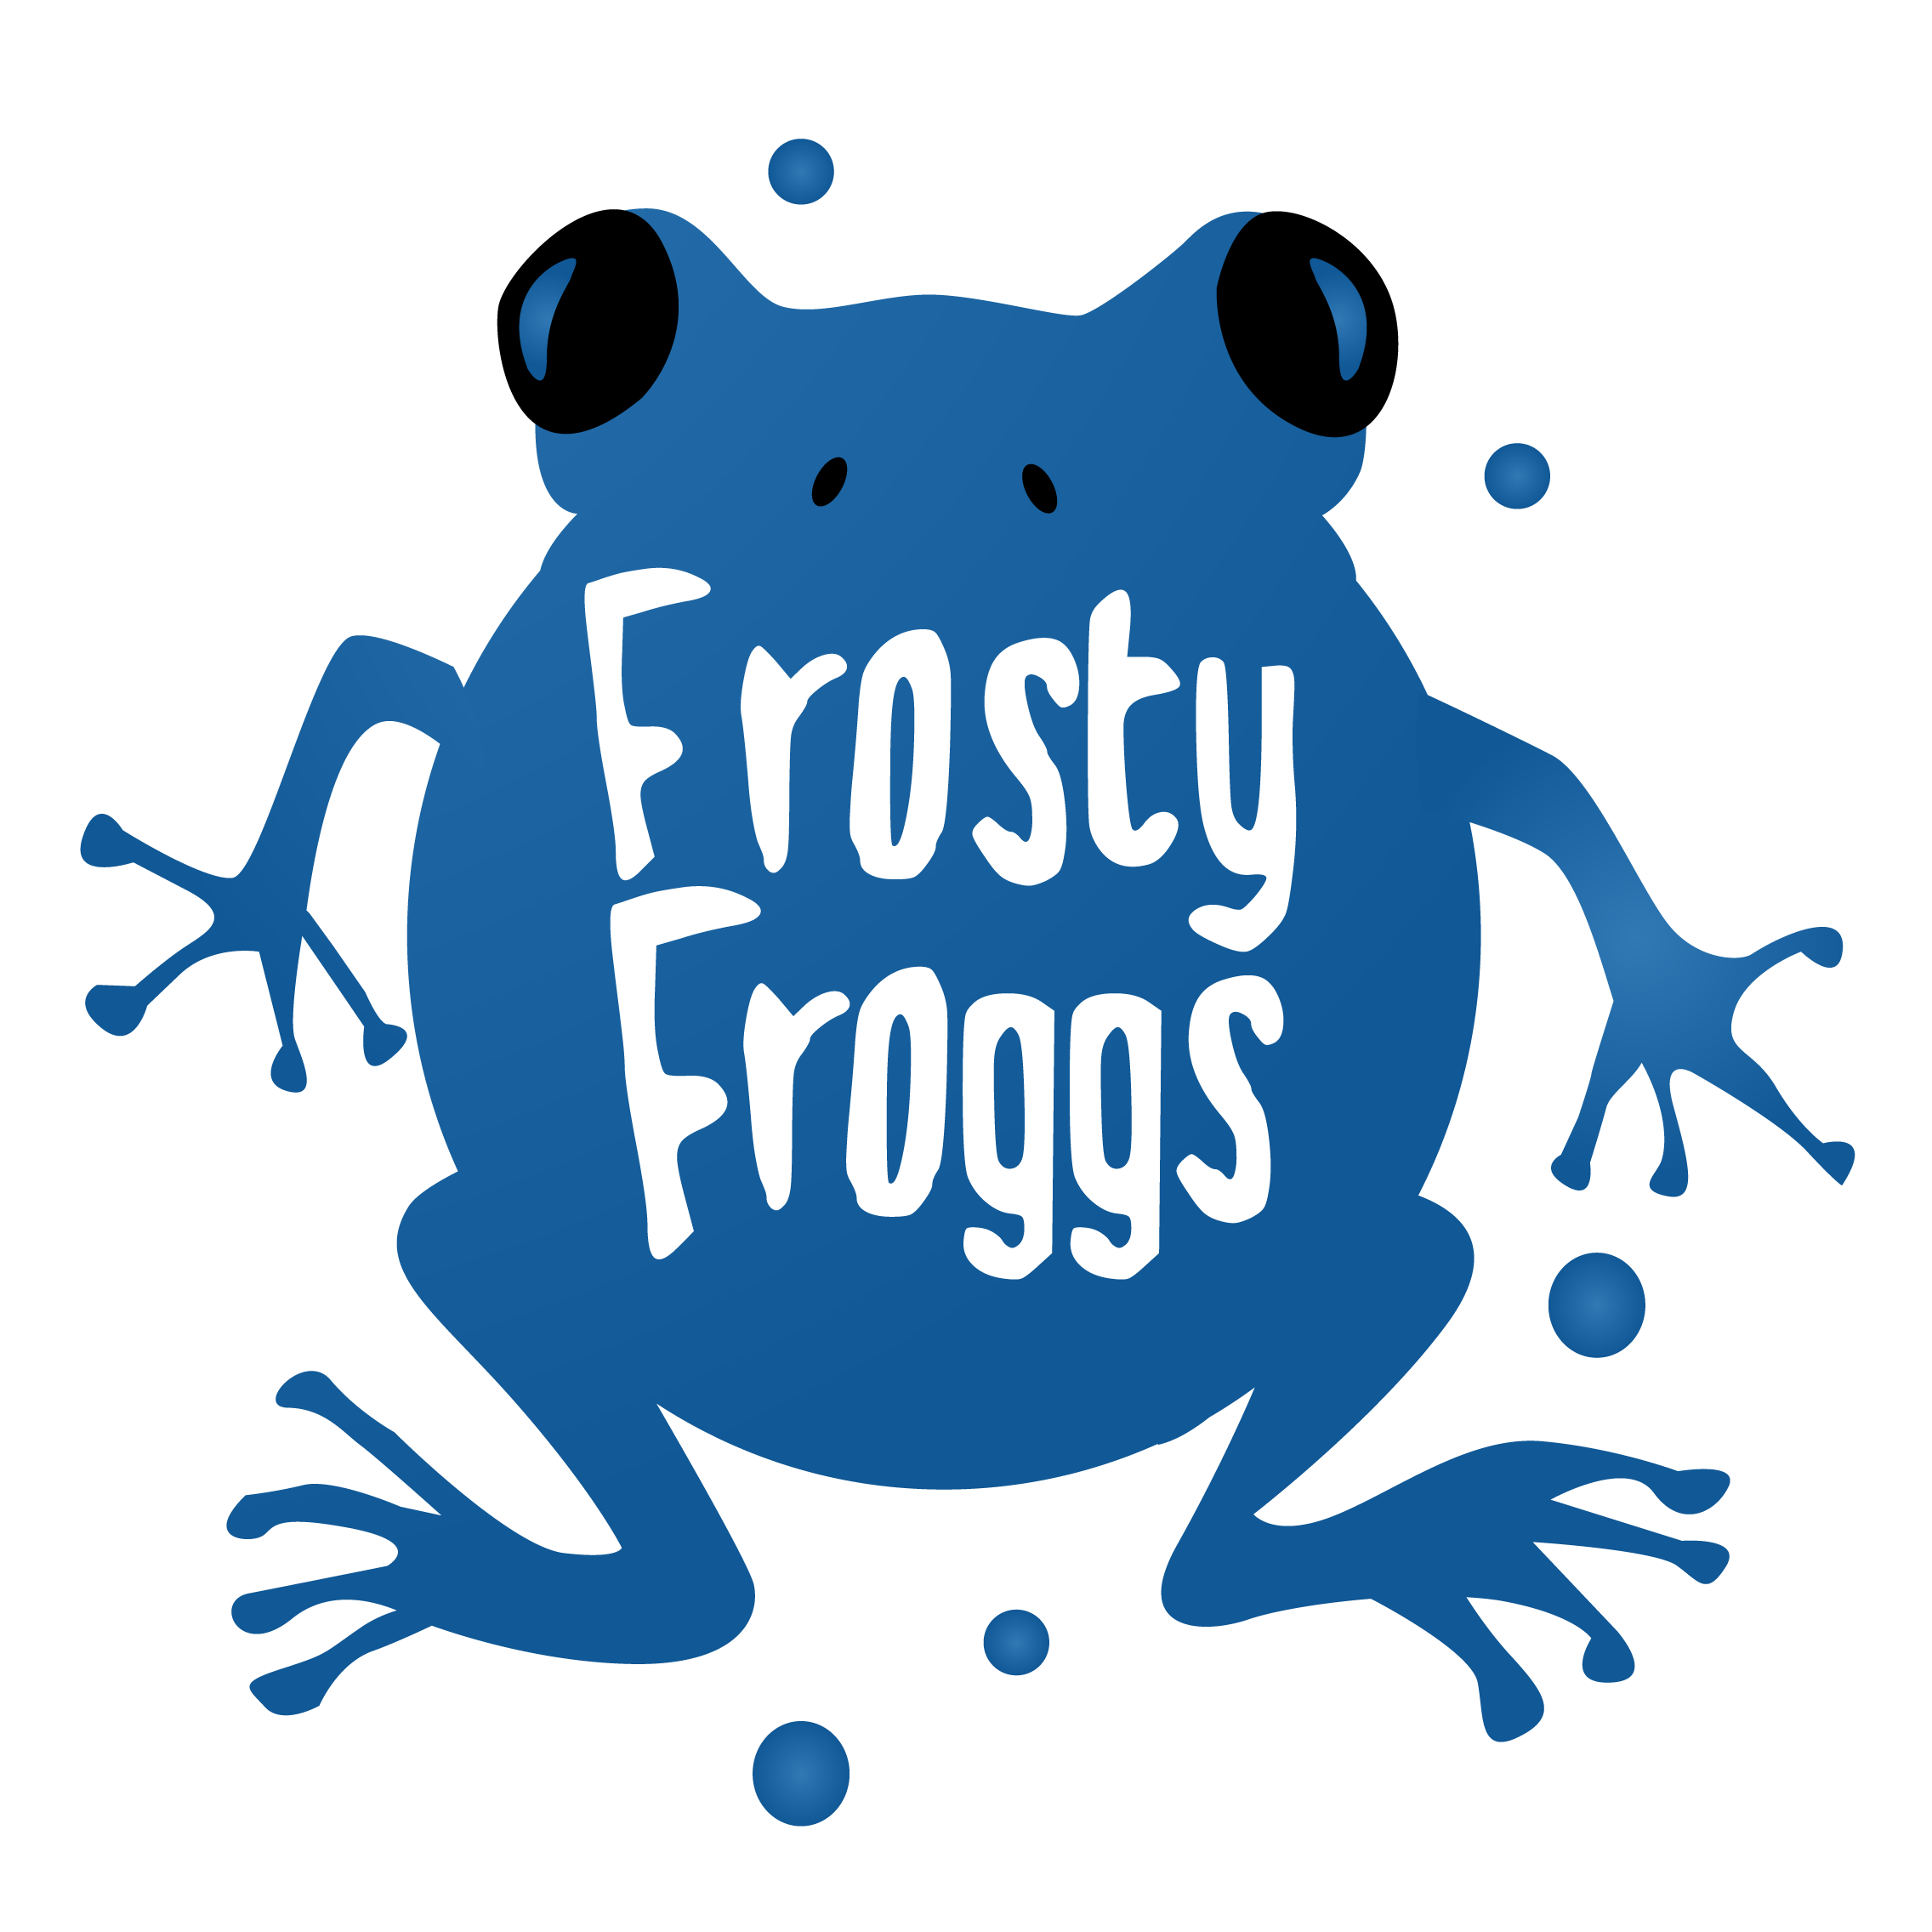 Frosty froggs on twitter. News clipart exciting news